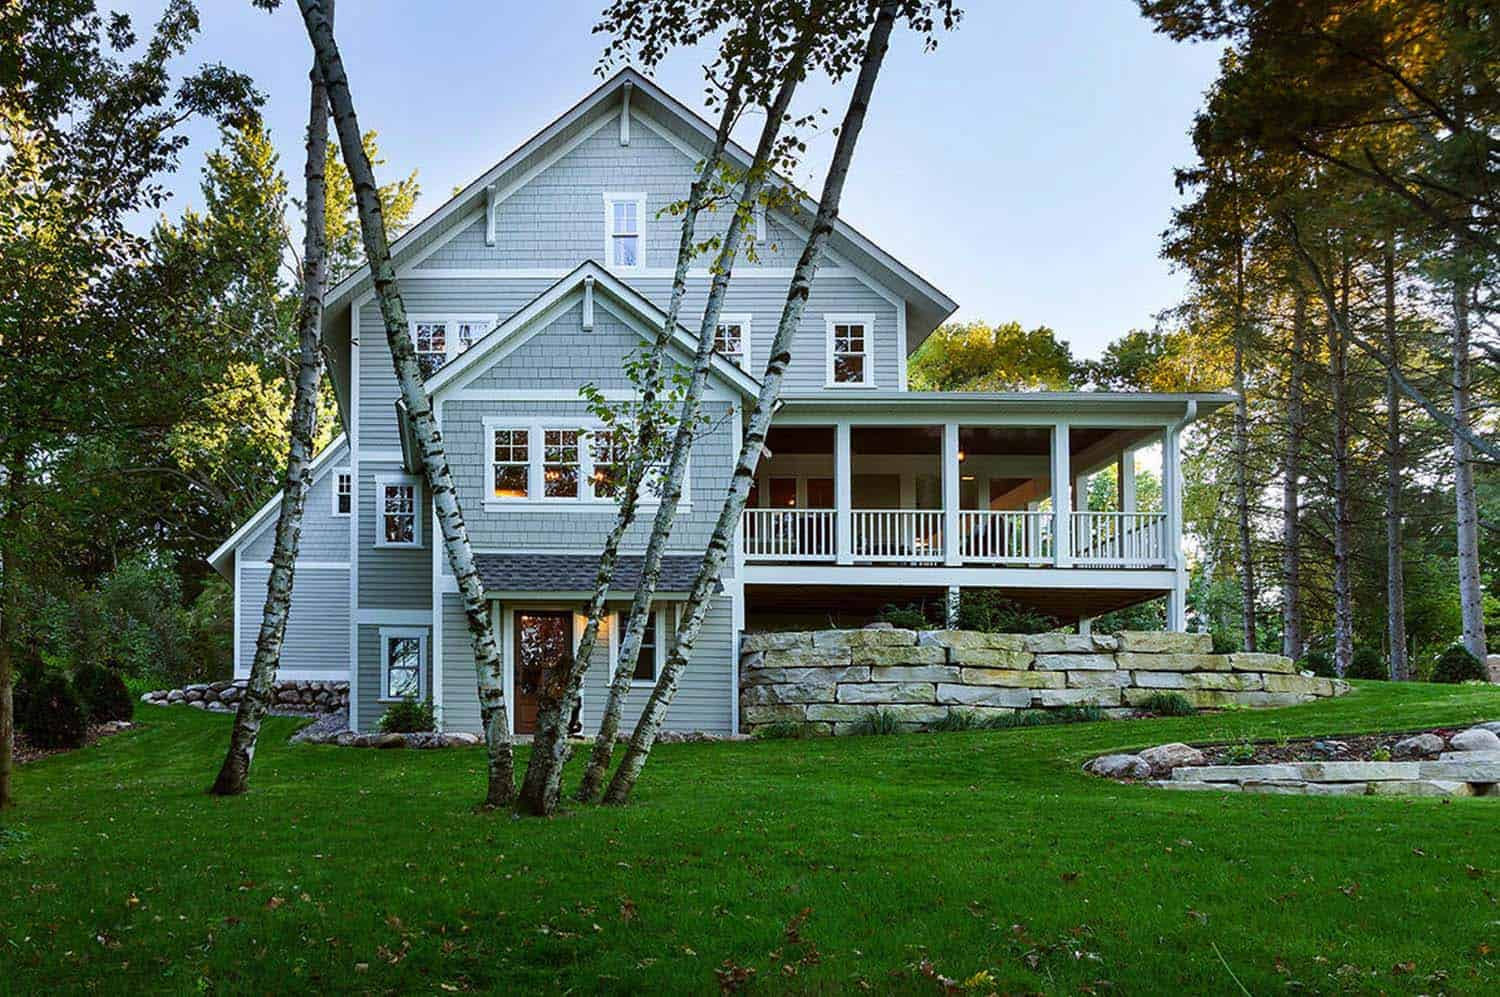 charming lakeside farmhouse nestled on a wooded site in minnesota